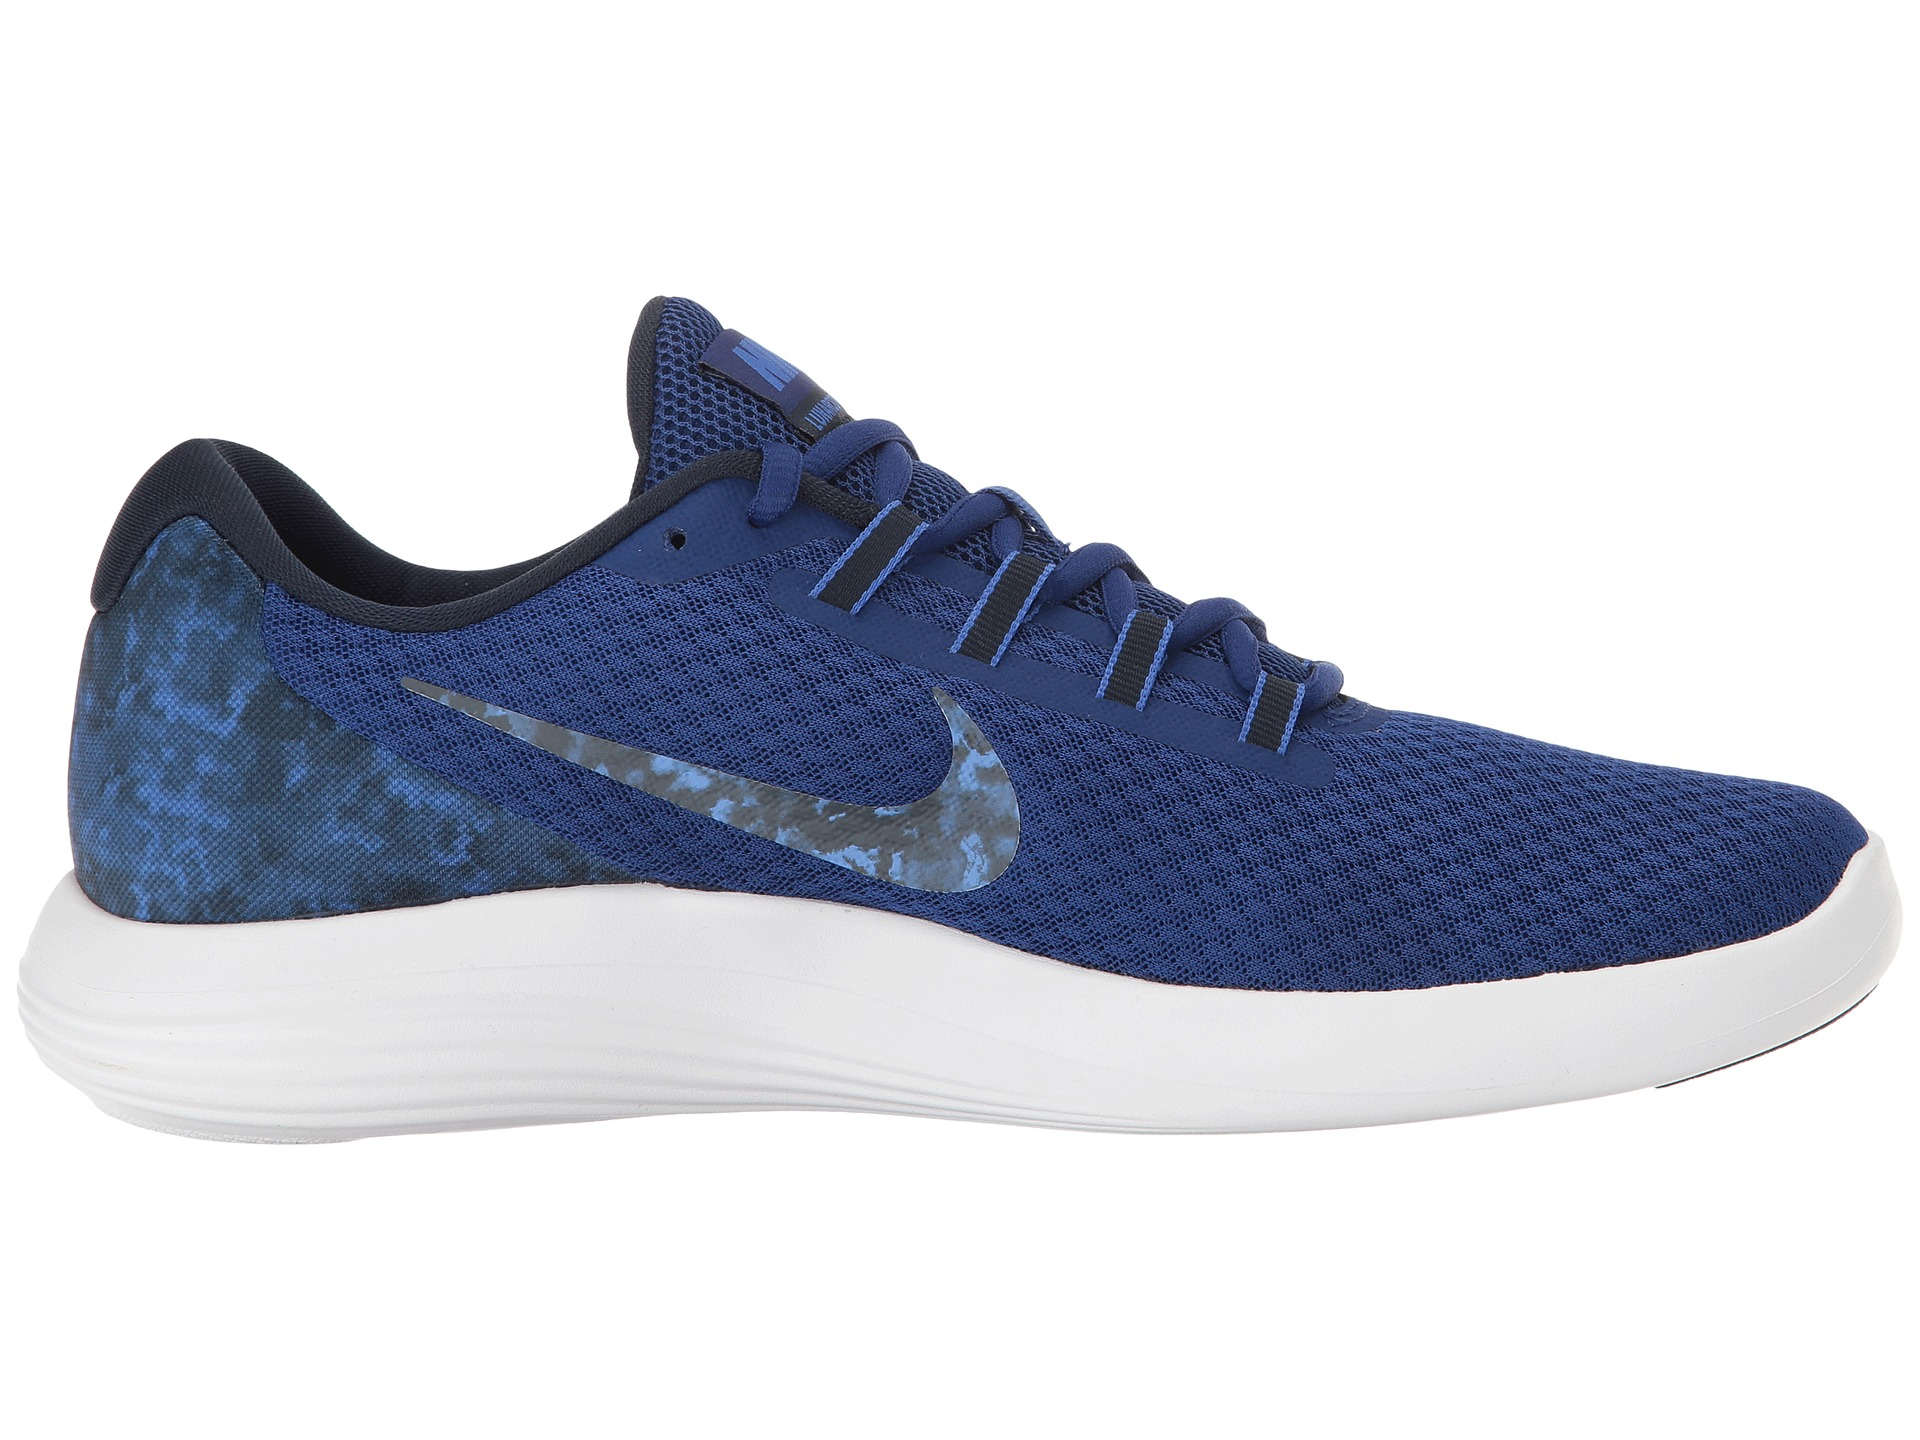 Nike Lunar Converge Shoe Review